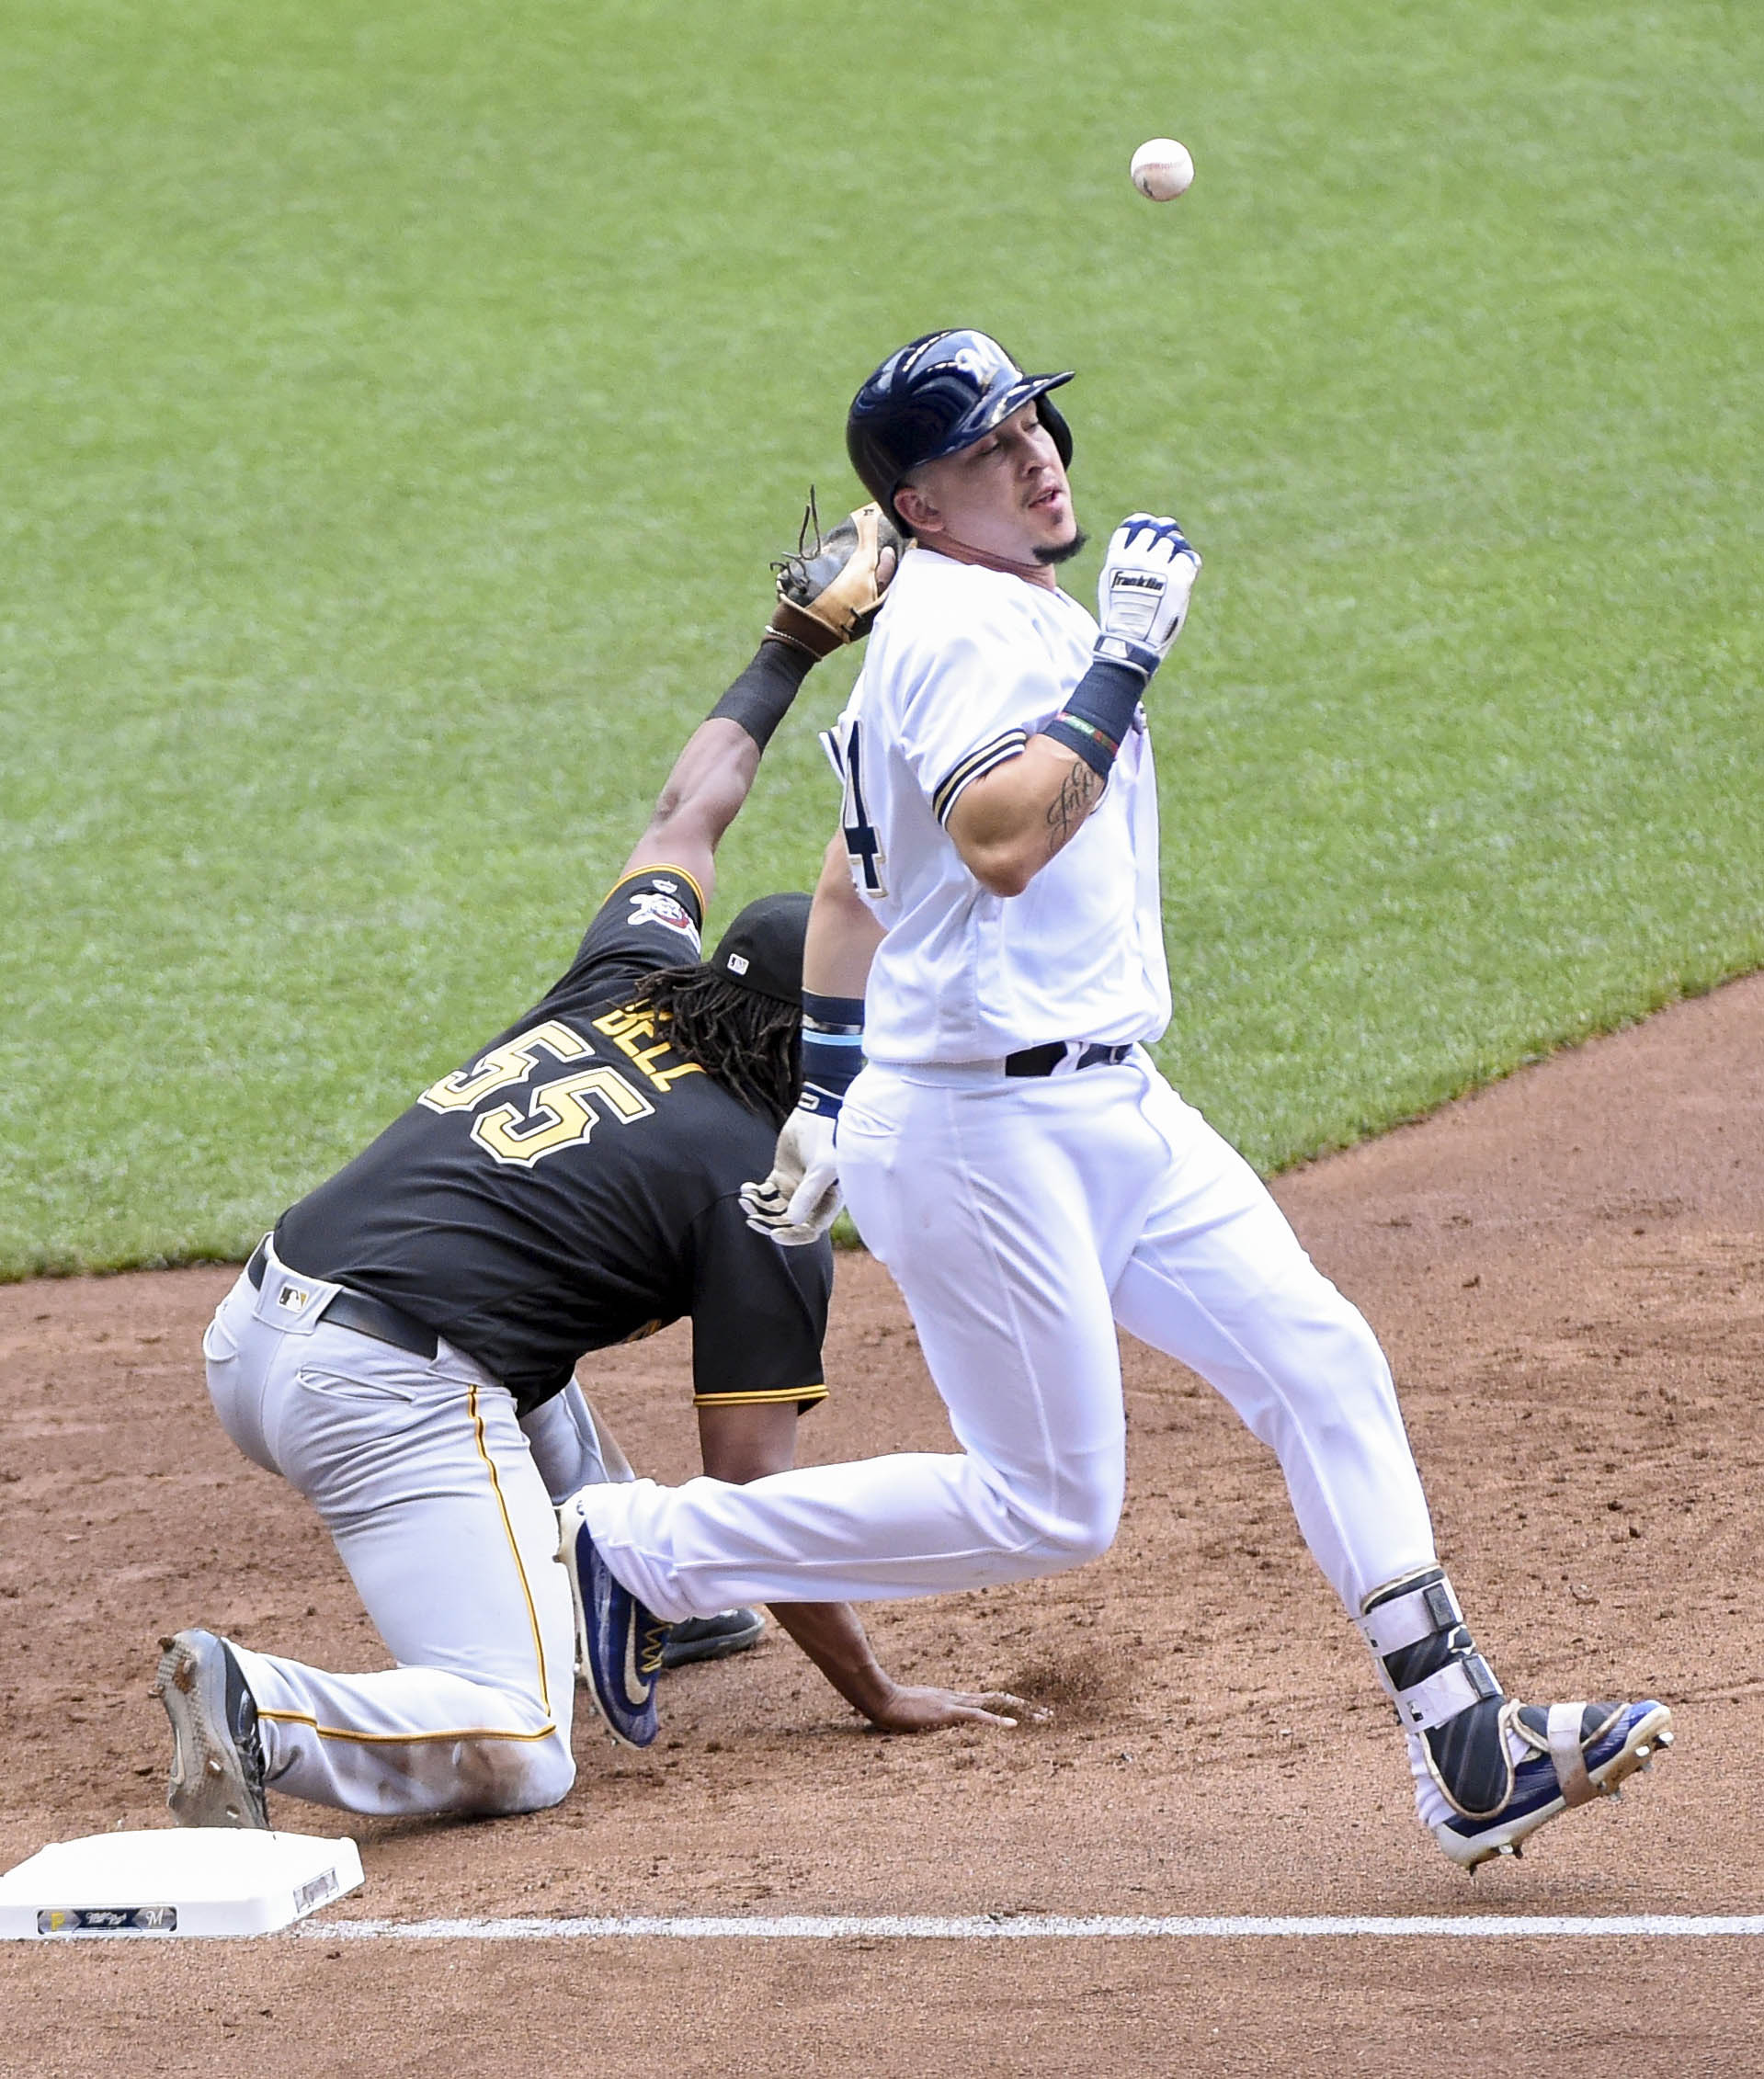 Milwaukee Brewers V Pittsburgh Pirates: Pittsburgh Pirates Miss Big Opportunity Vs Brewers